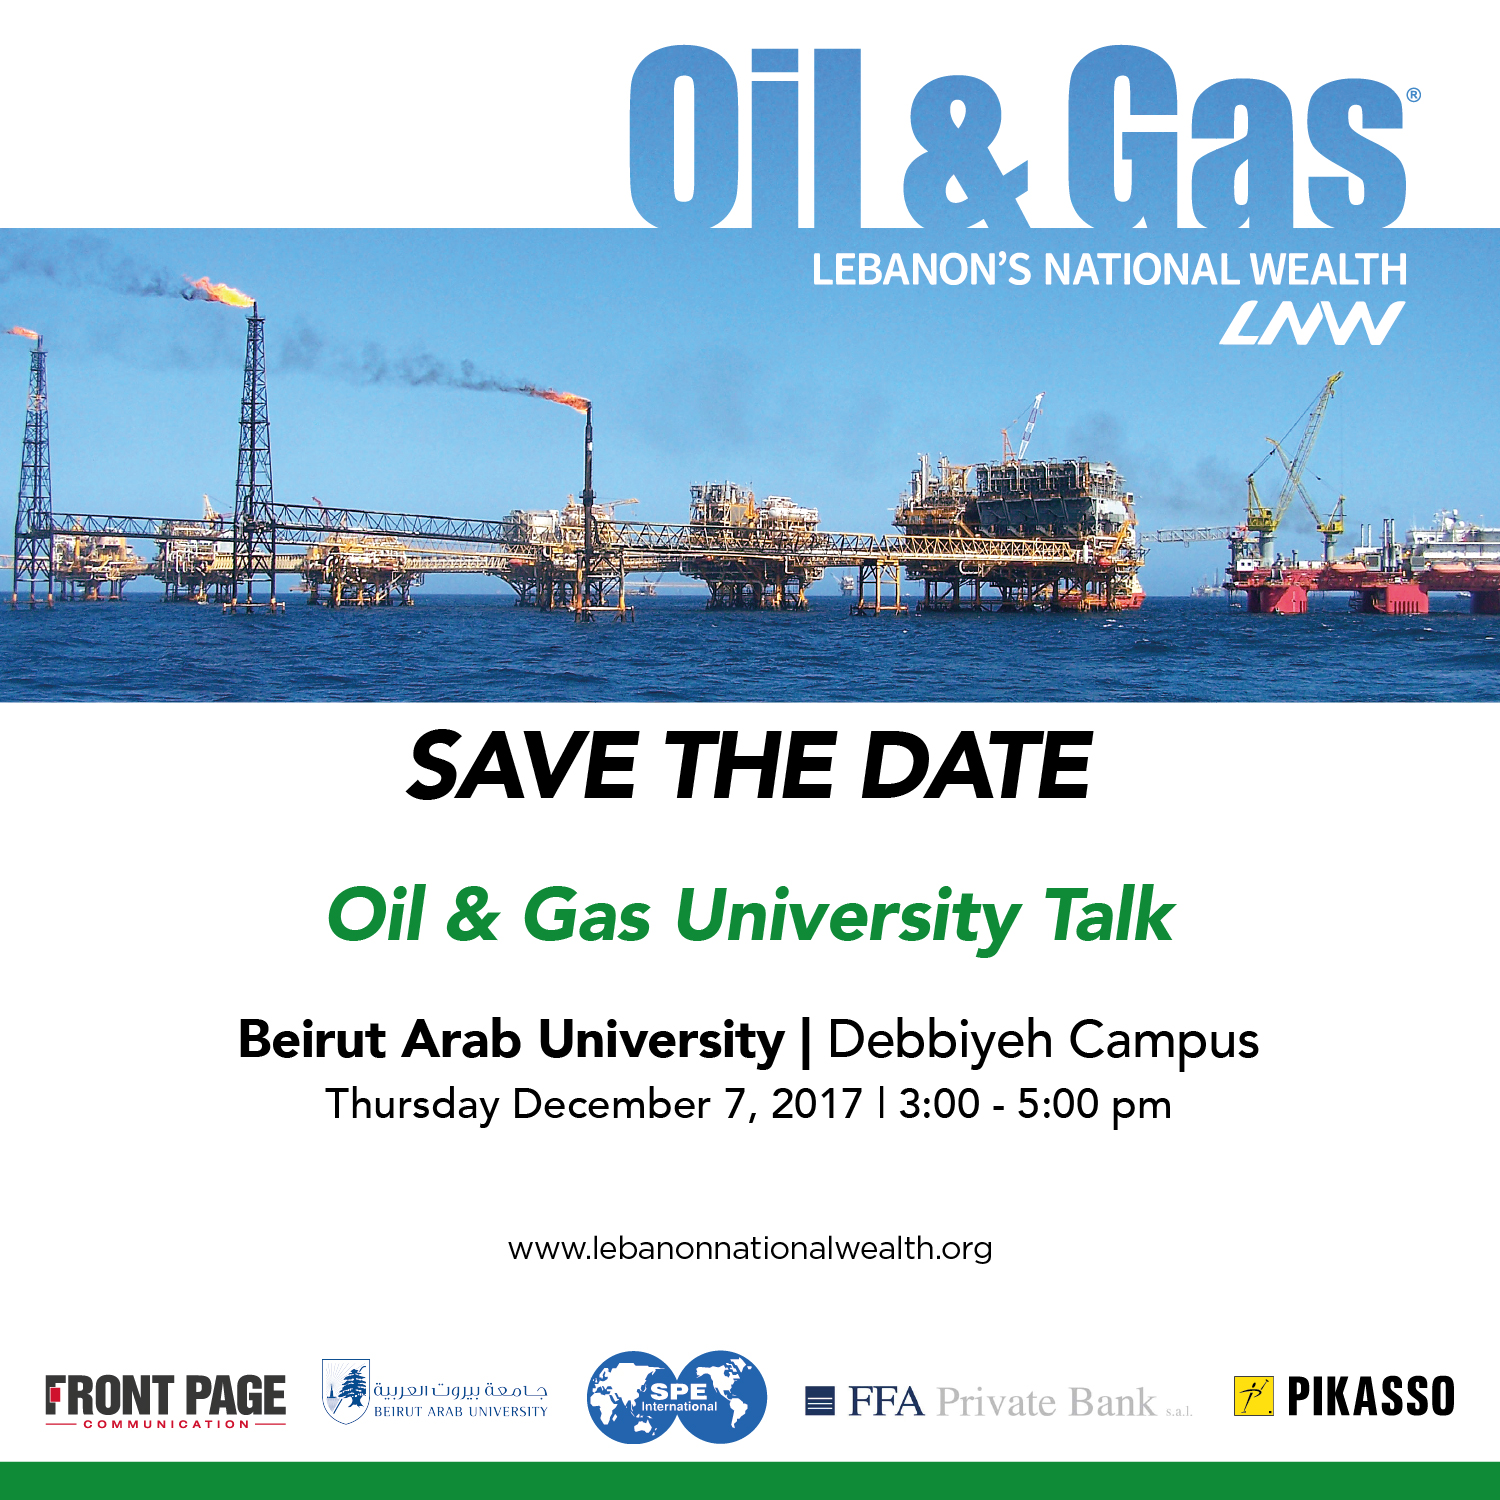 Oil & Gas University Talk